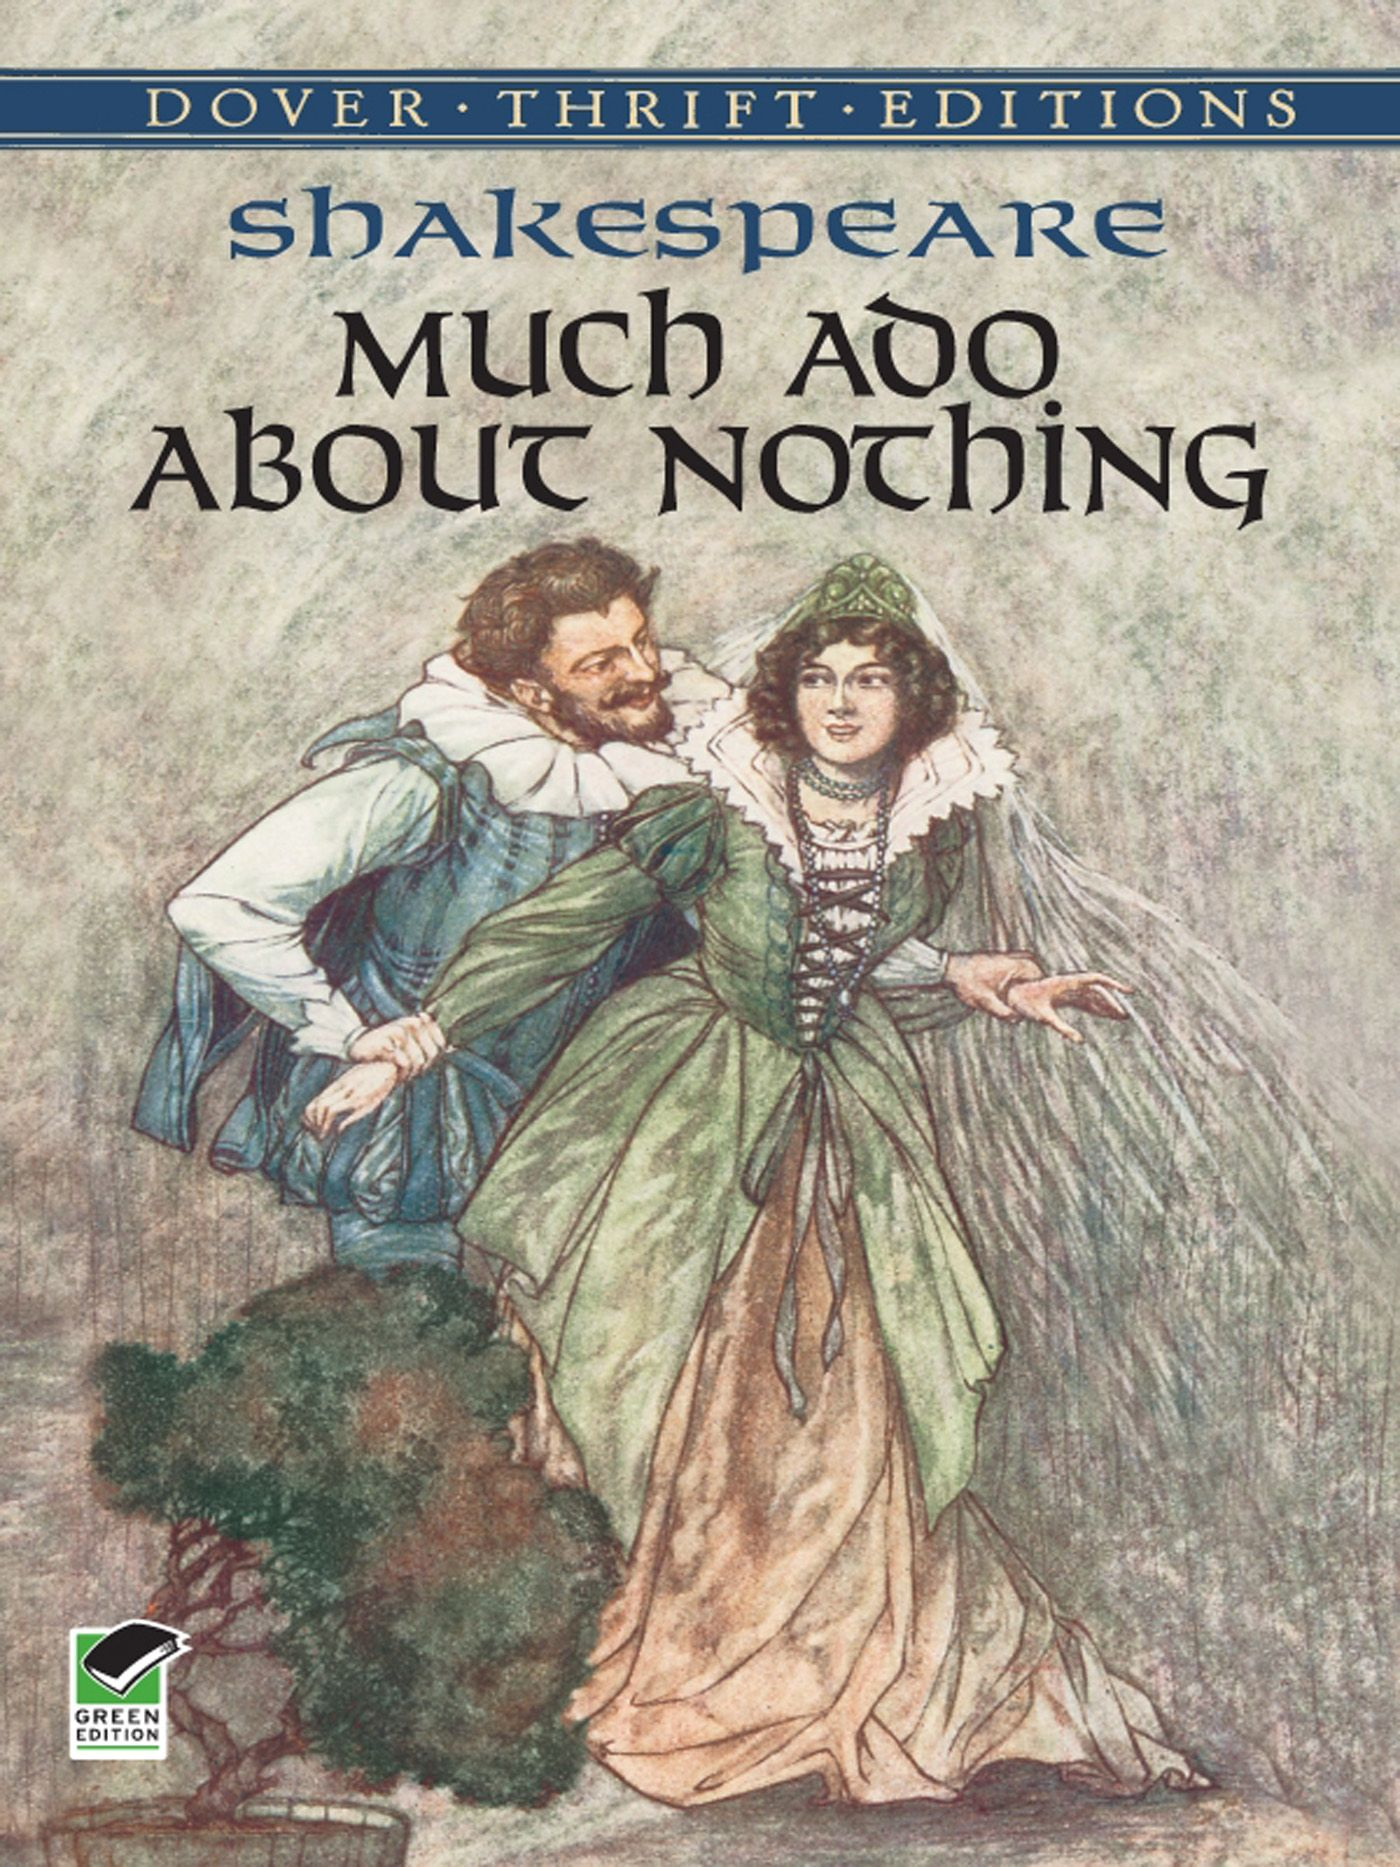 battle sexes shakespeares much ado nothing Much ado about nothing is a comedy by william shakespeare thought to have been written in 1598 and 1599, as shakespeare was approaching the middle of his career the play was included in the first folio, published in 1623.